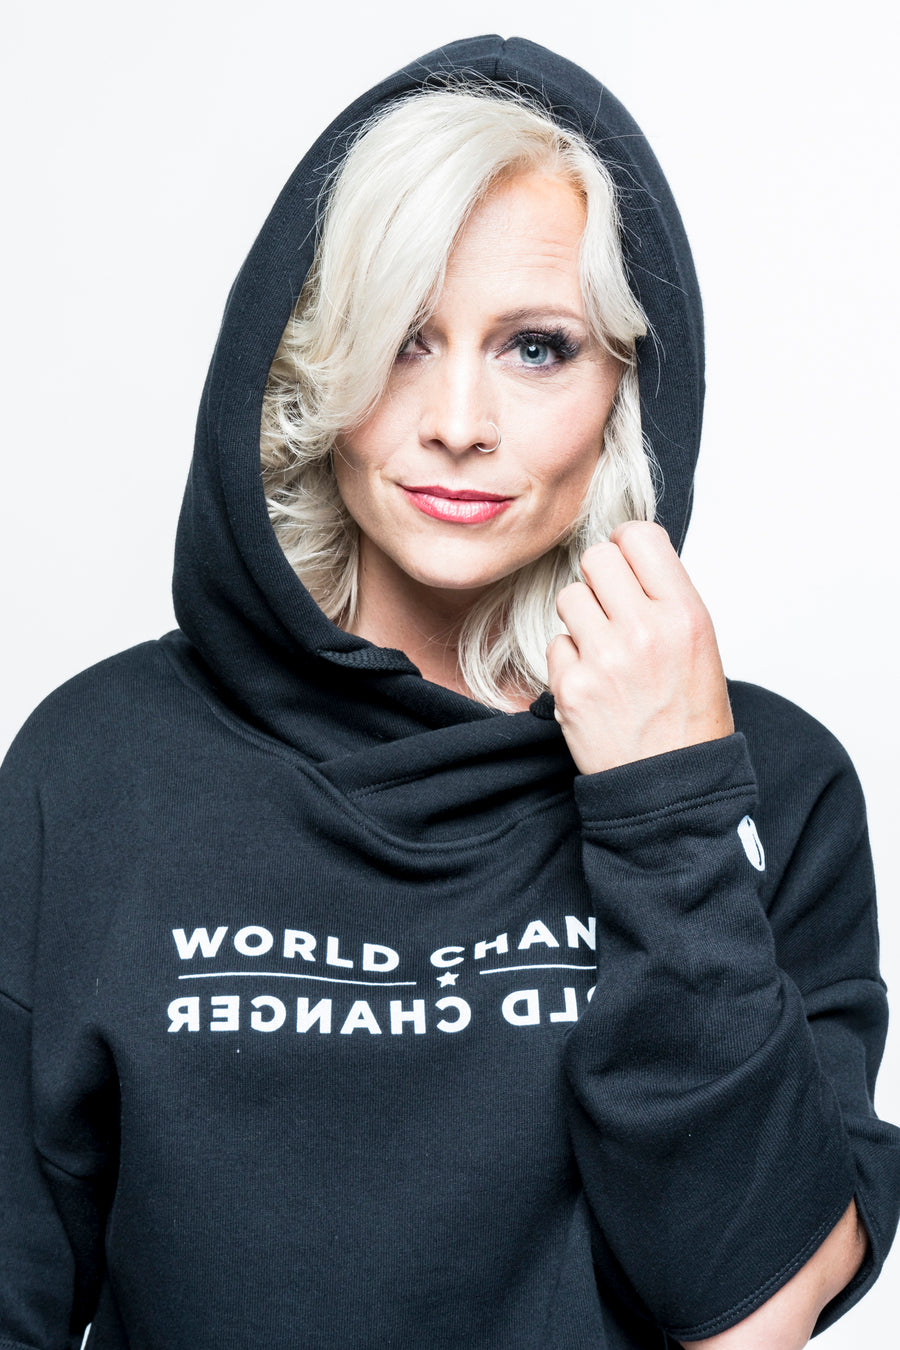 World Changer Split-Sleeve Hooded Sweatshirt